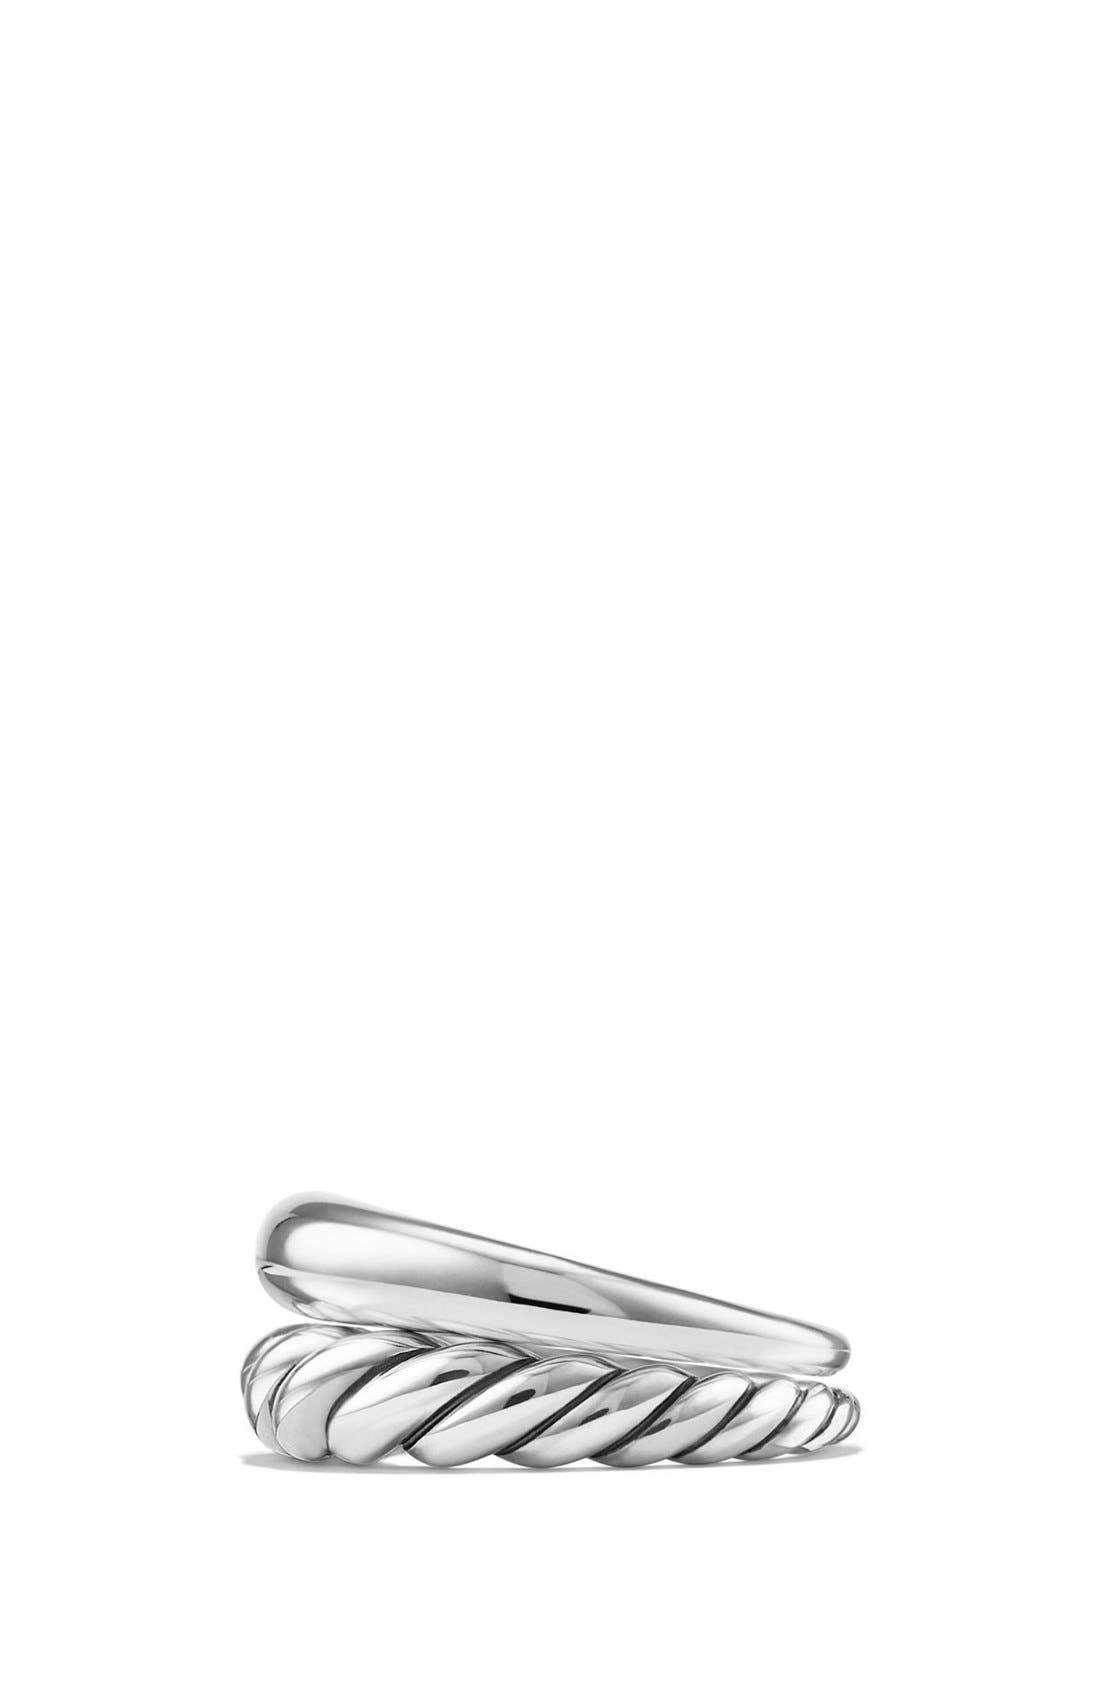 'Pure Form' Sterling Silver Stacking Rings,                             Alternate thumbnail 3, color,                             SILVER